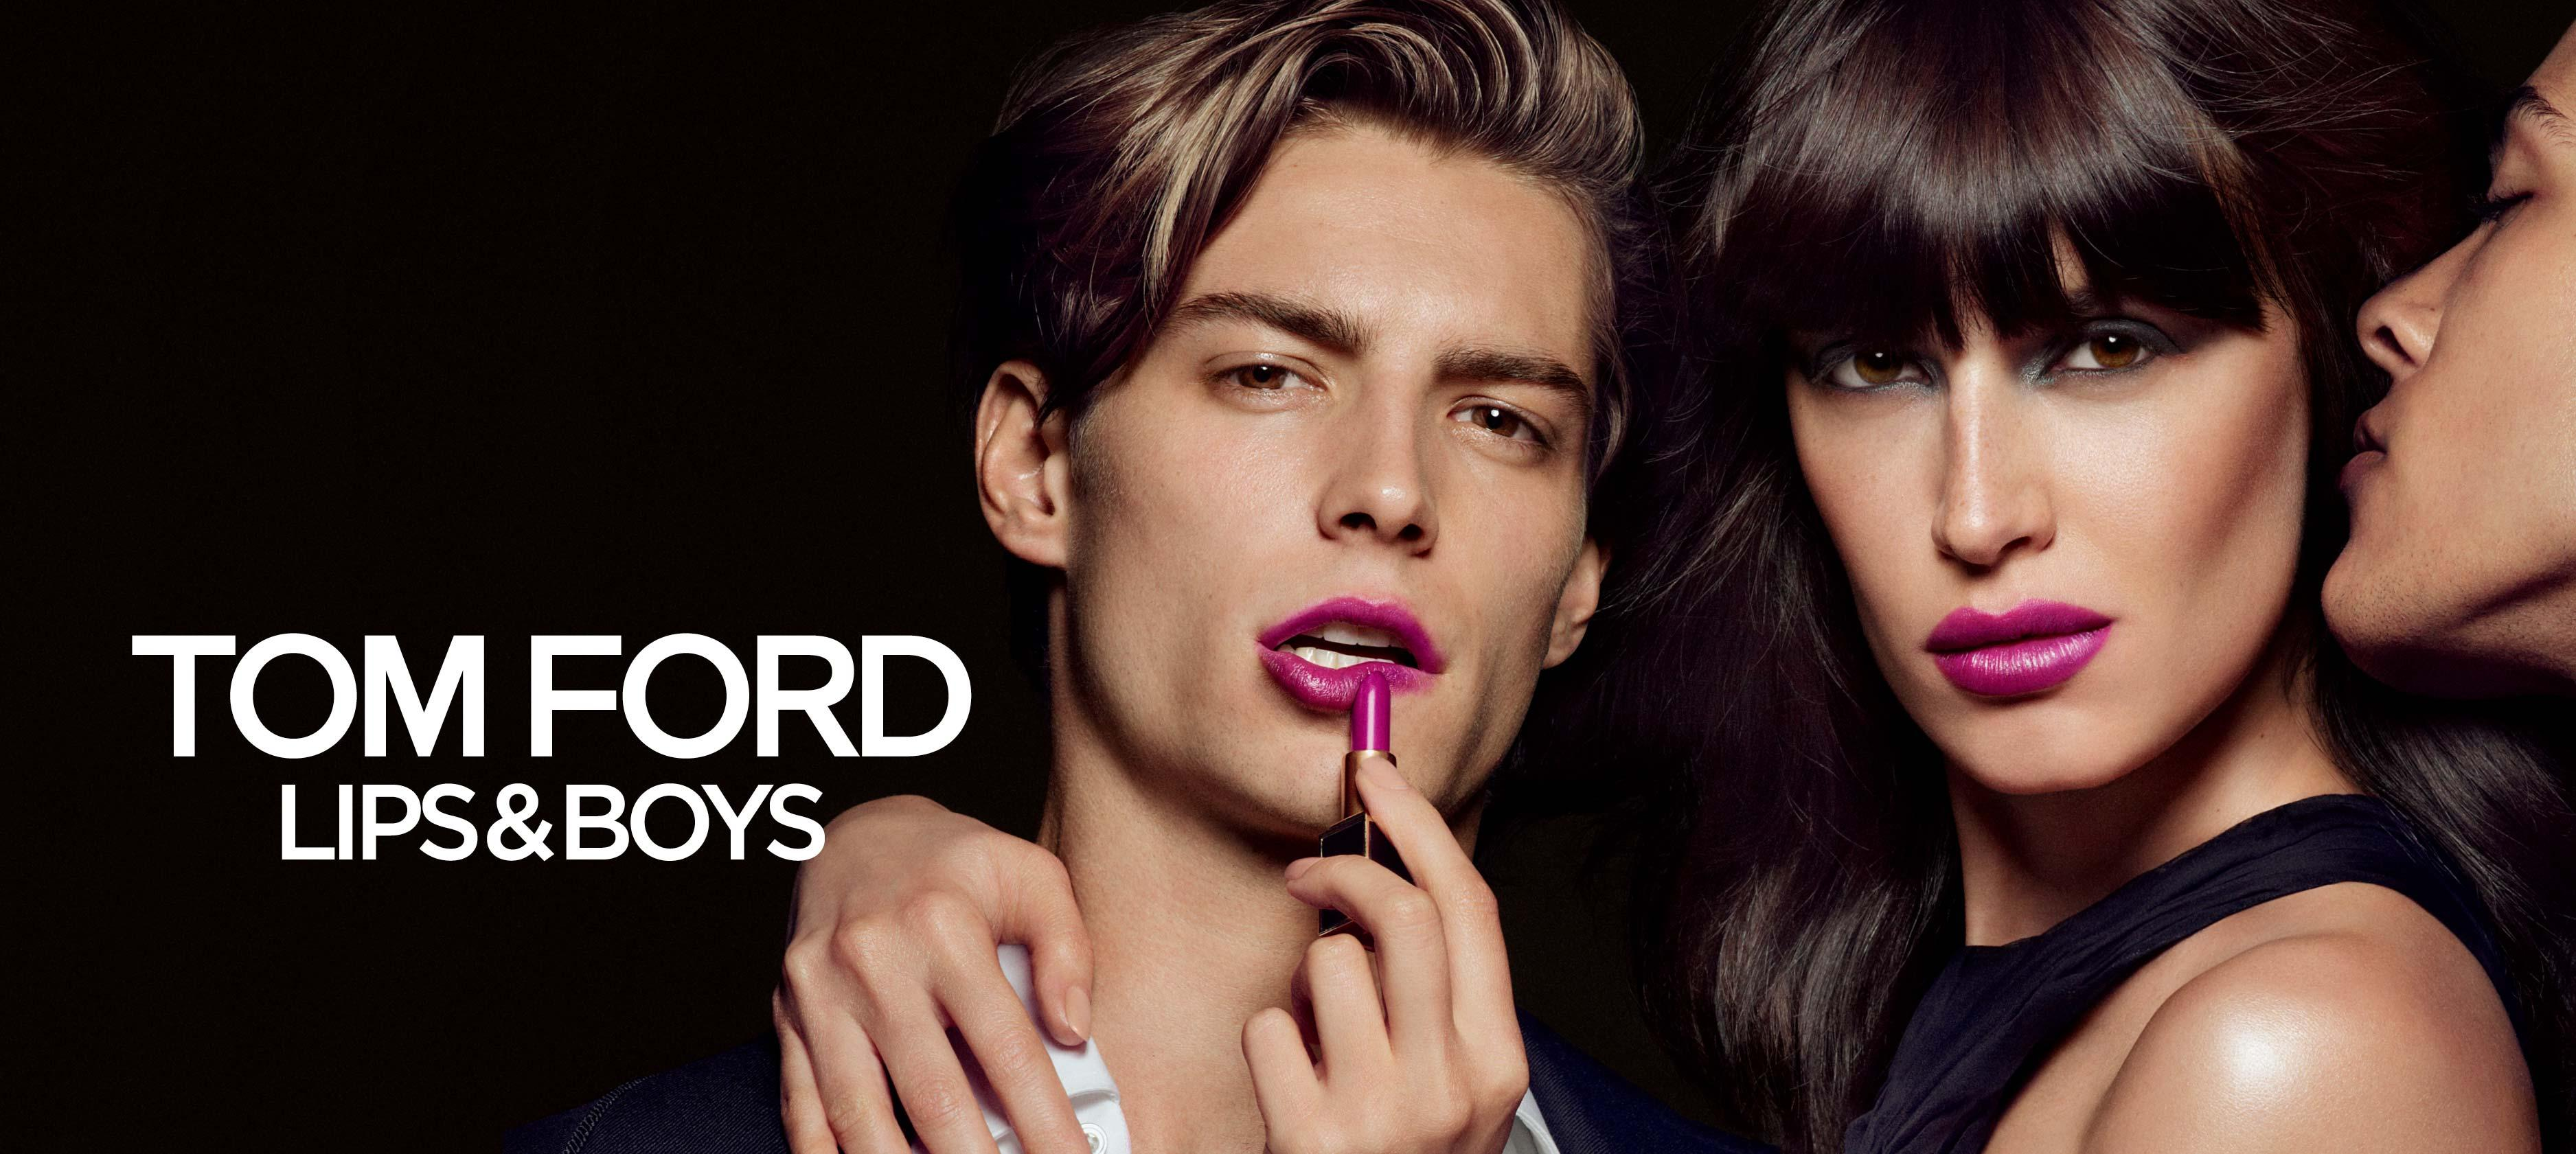 Tom Ford Lips and Boys ad campaign